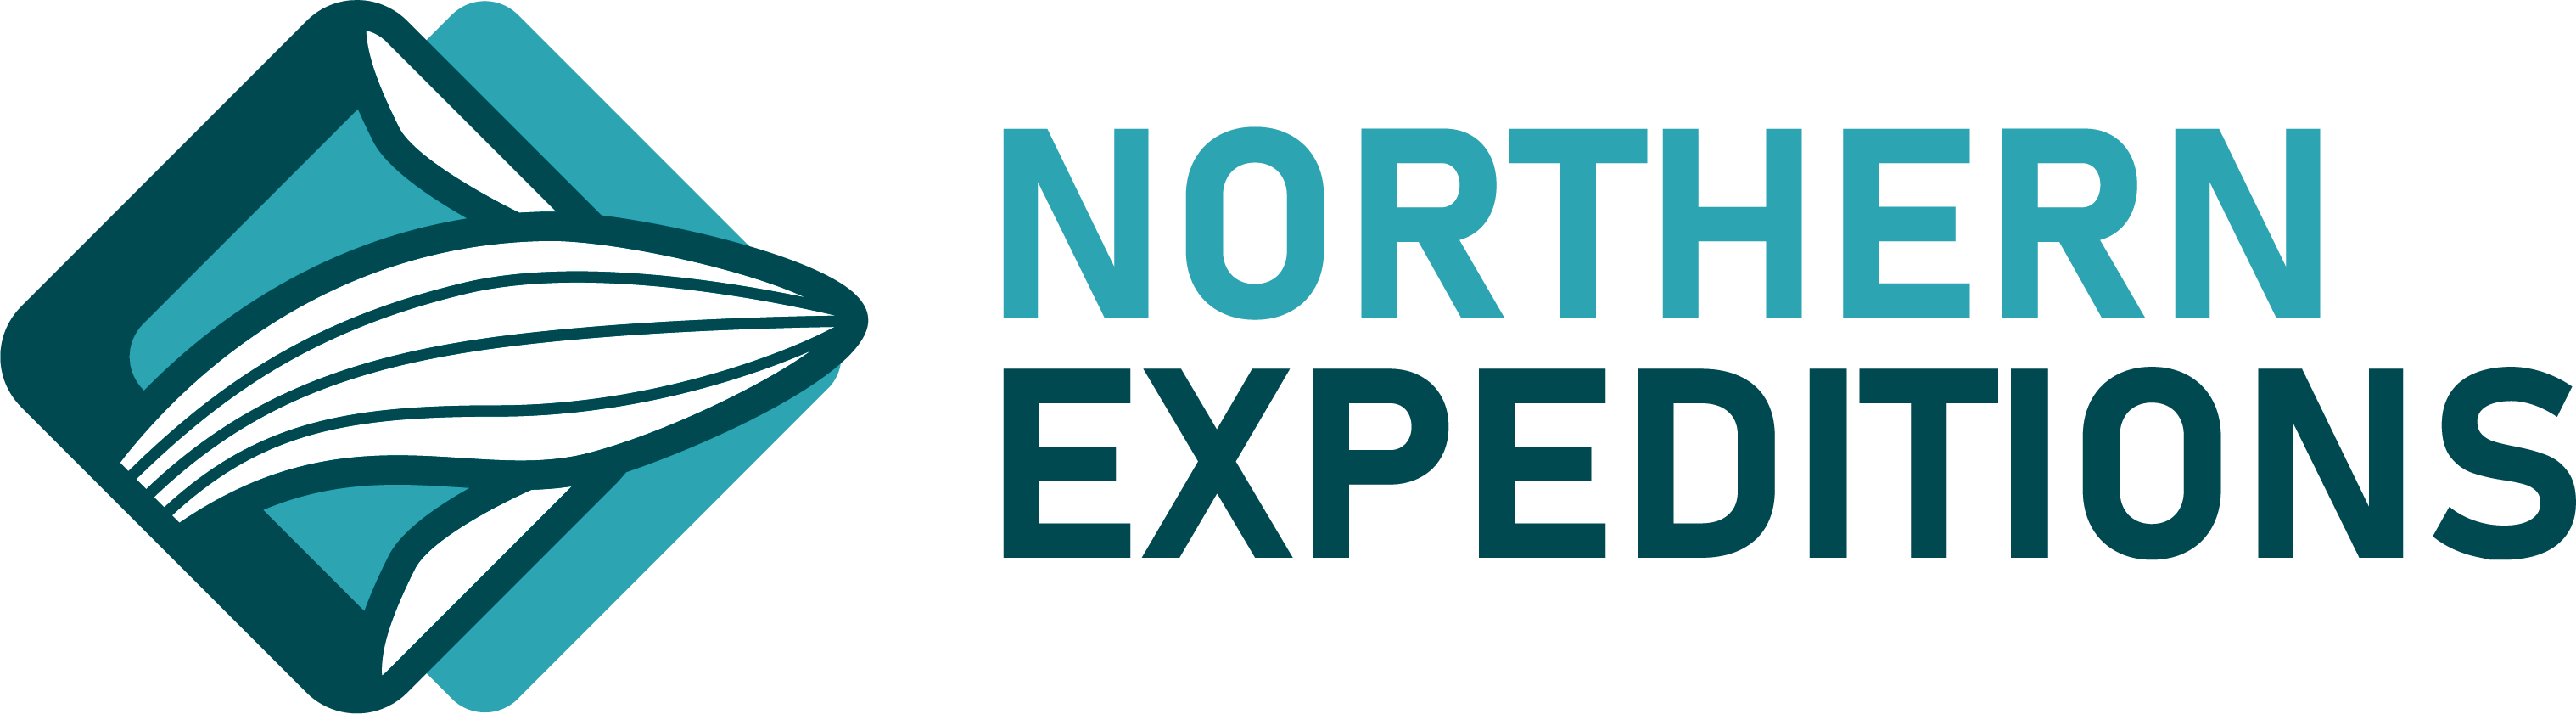 Northern Expedition